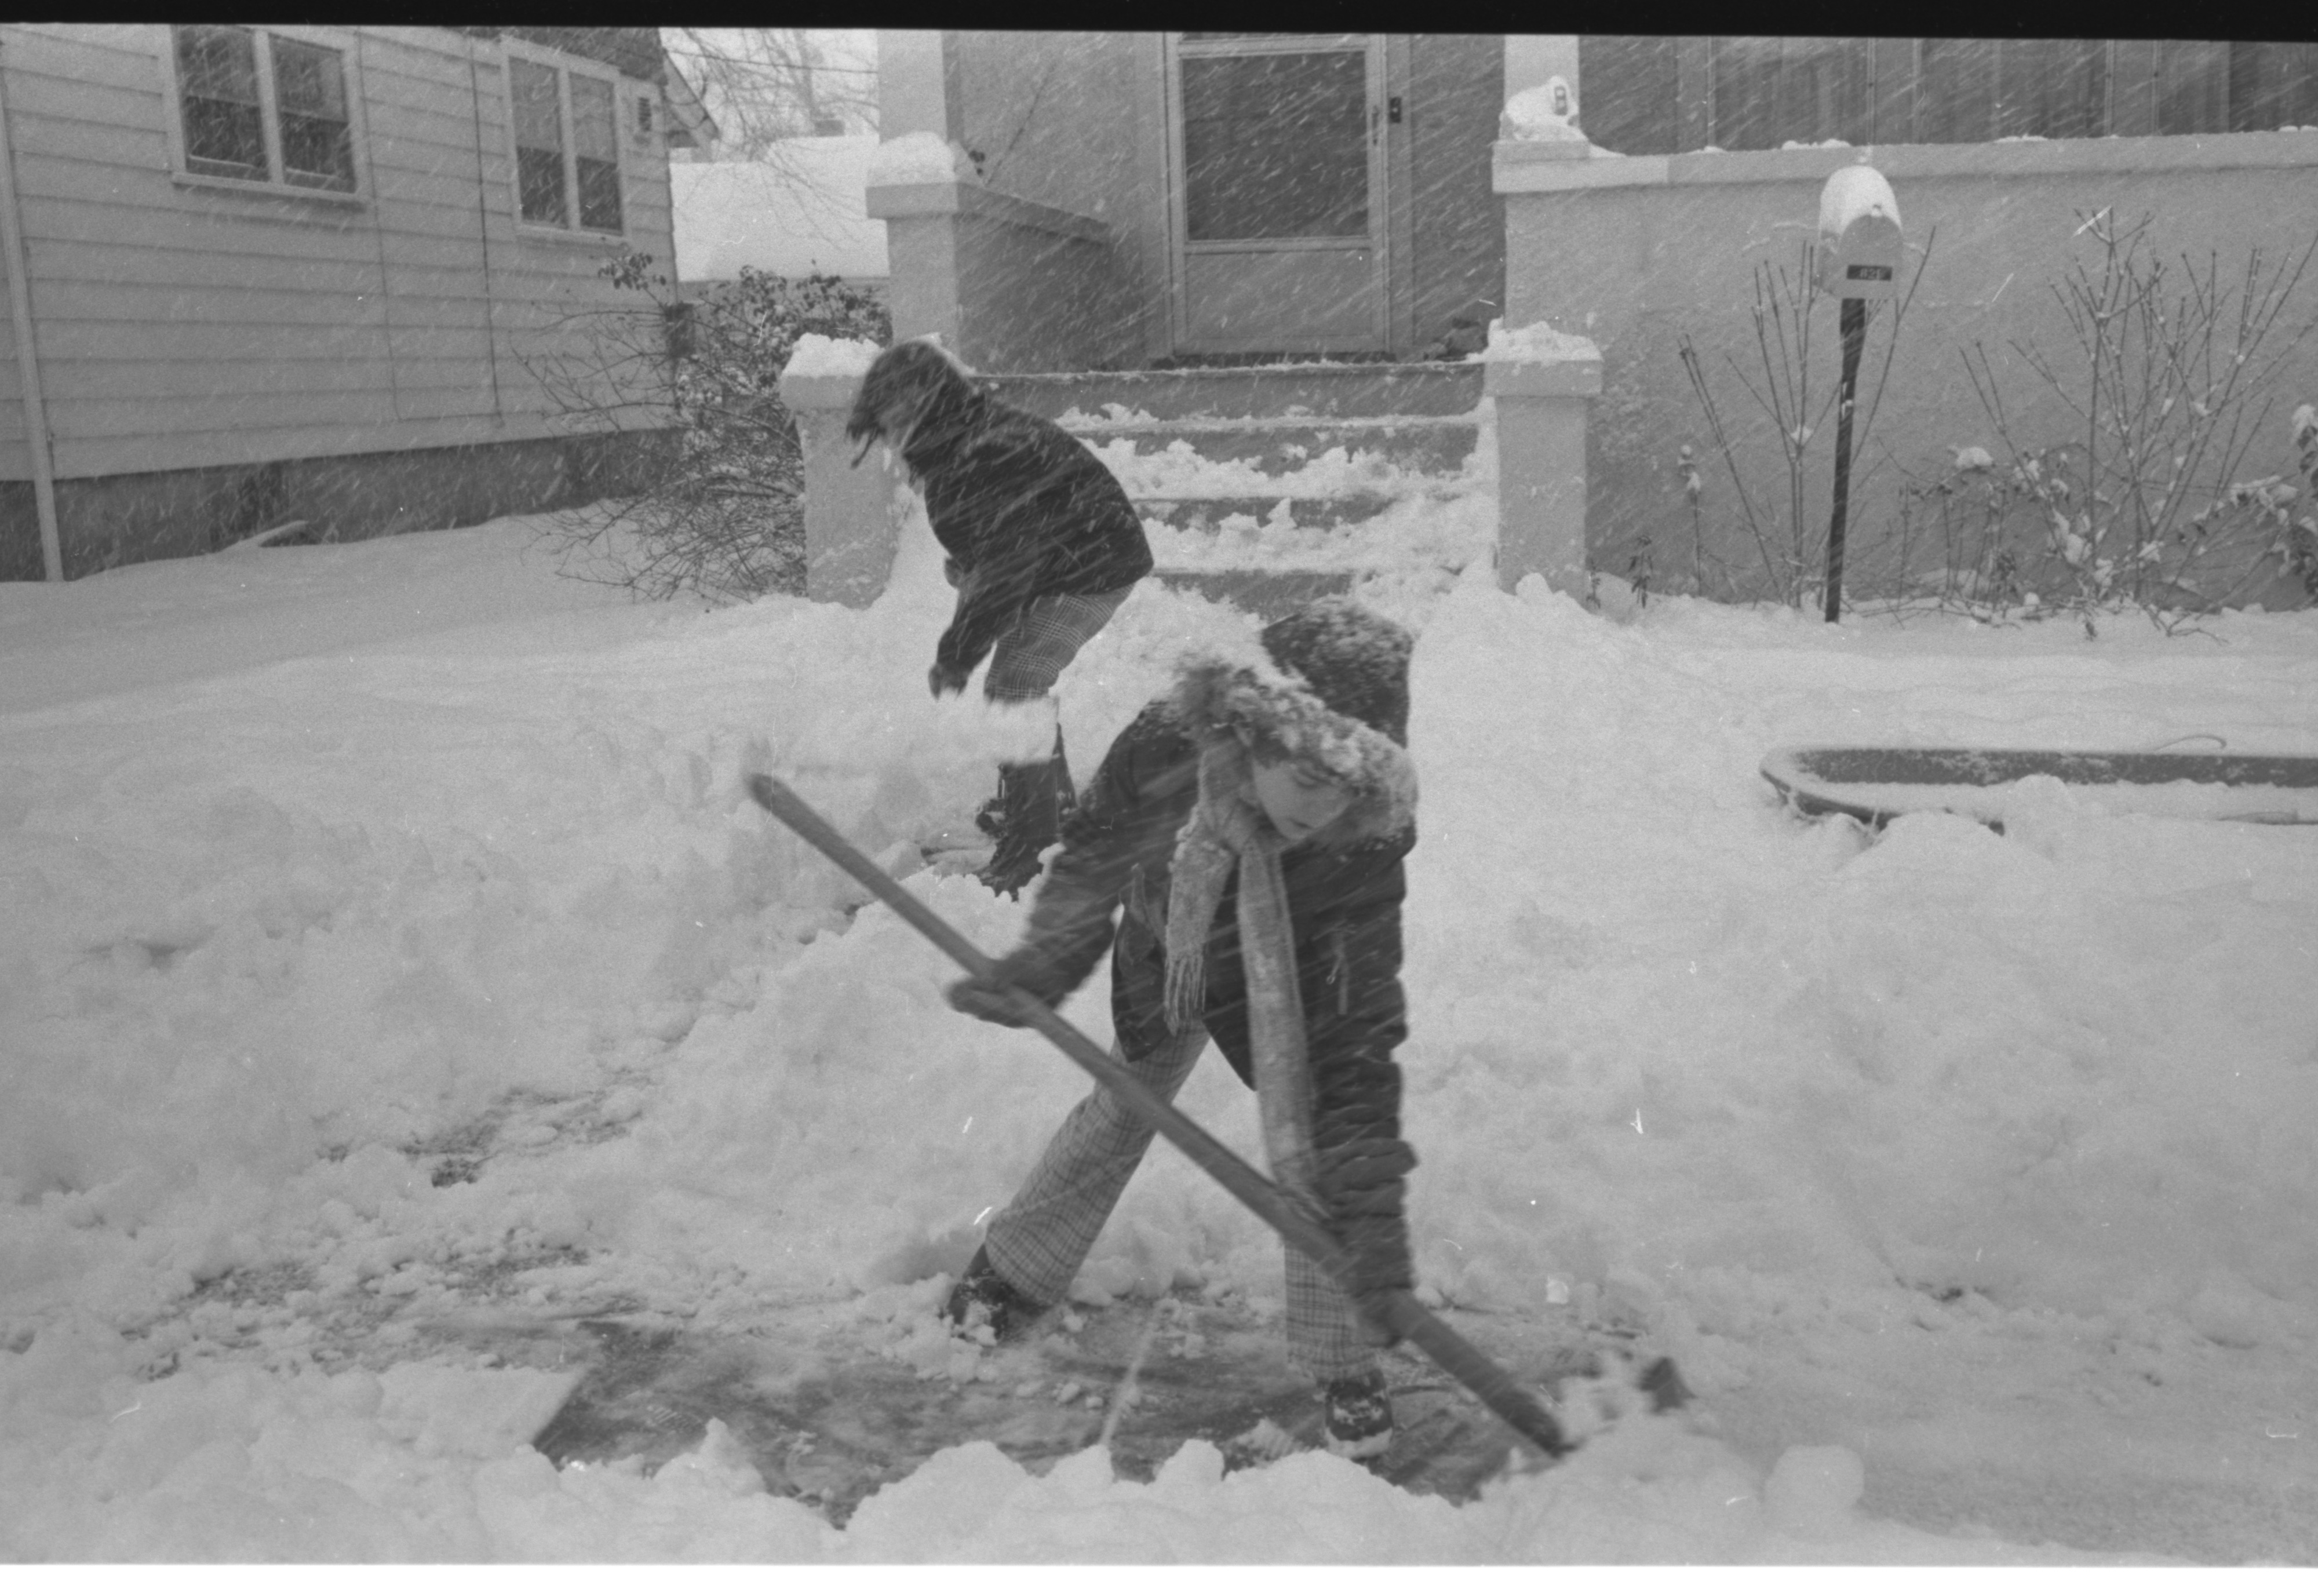 """the childrens blizzard essays On this day in 1888, the so-called """"schoolchildren's blizzard"""" kills 235 people, many of whom were children on their way home from school, across the northwest plains region of the united."""